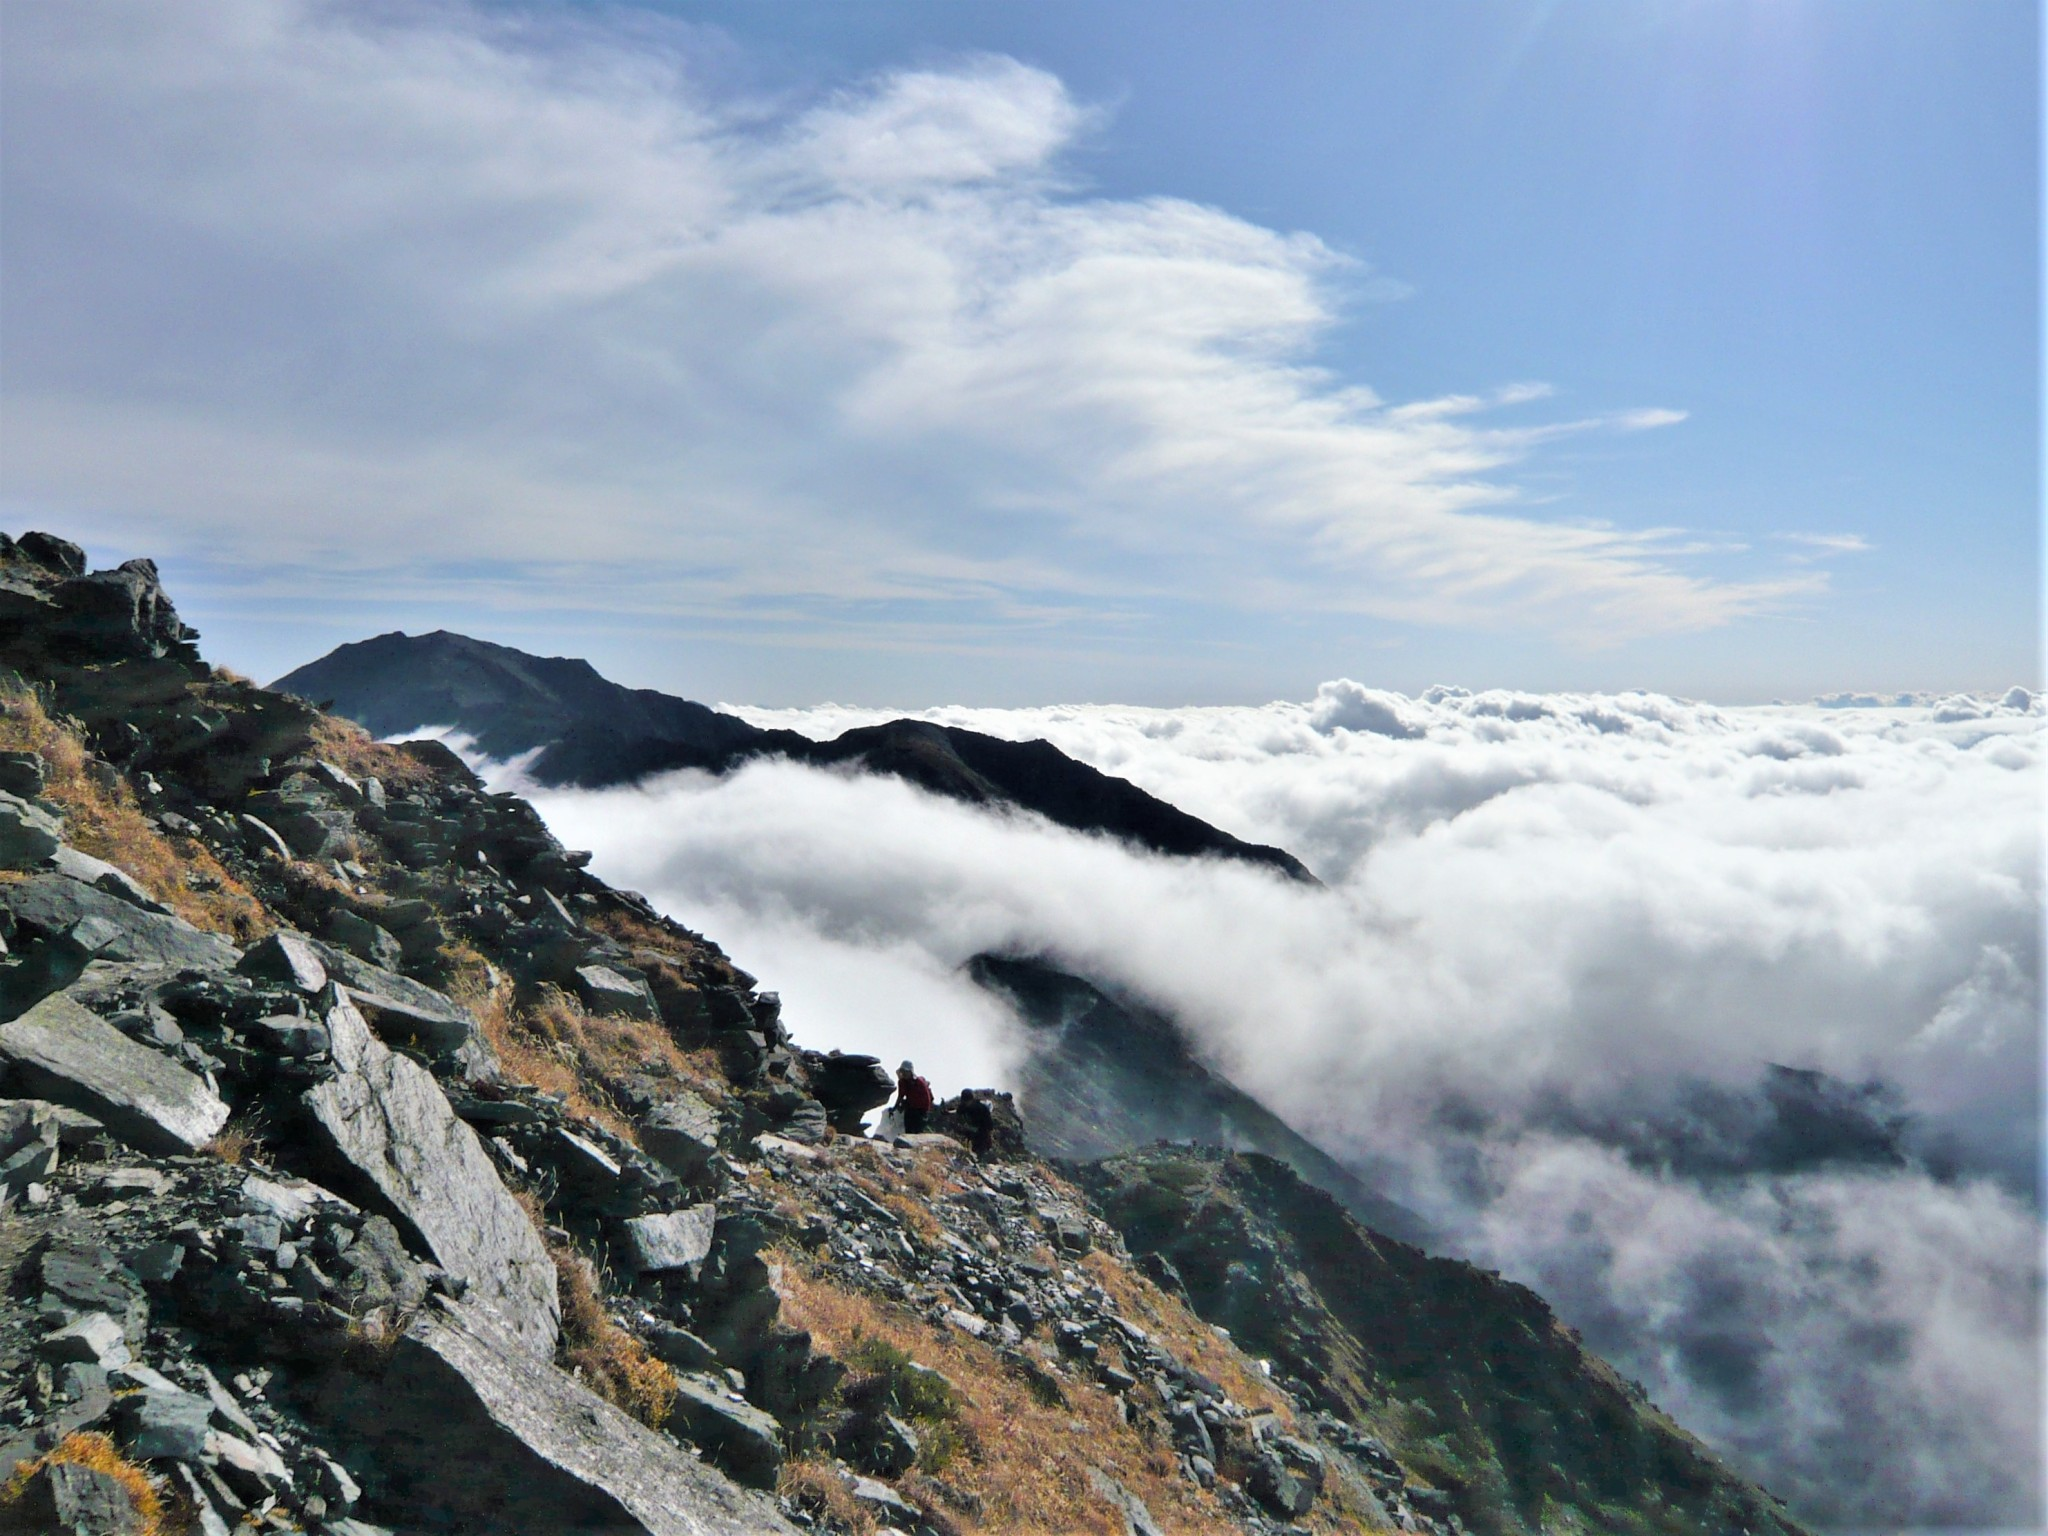 A rocky mountain ridgeline rising out of and above a sea of white clouds in the Japan Alps.